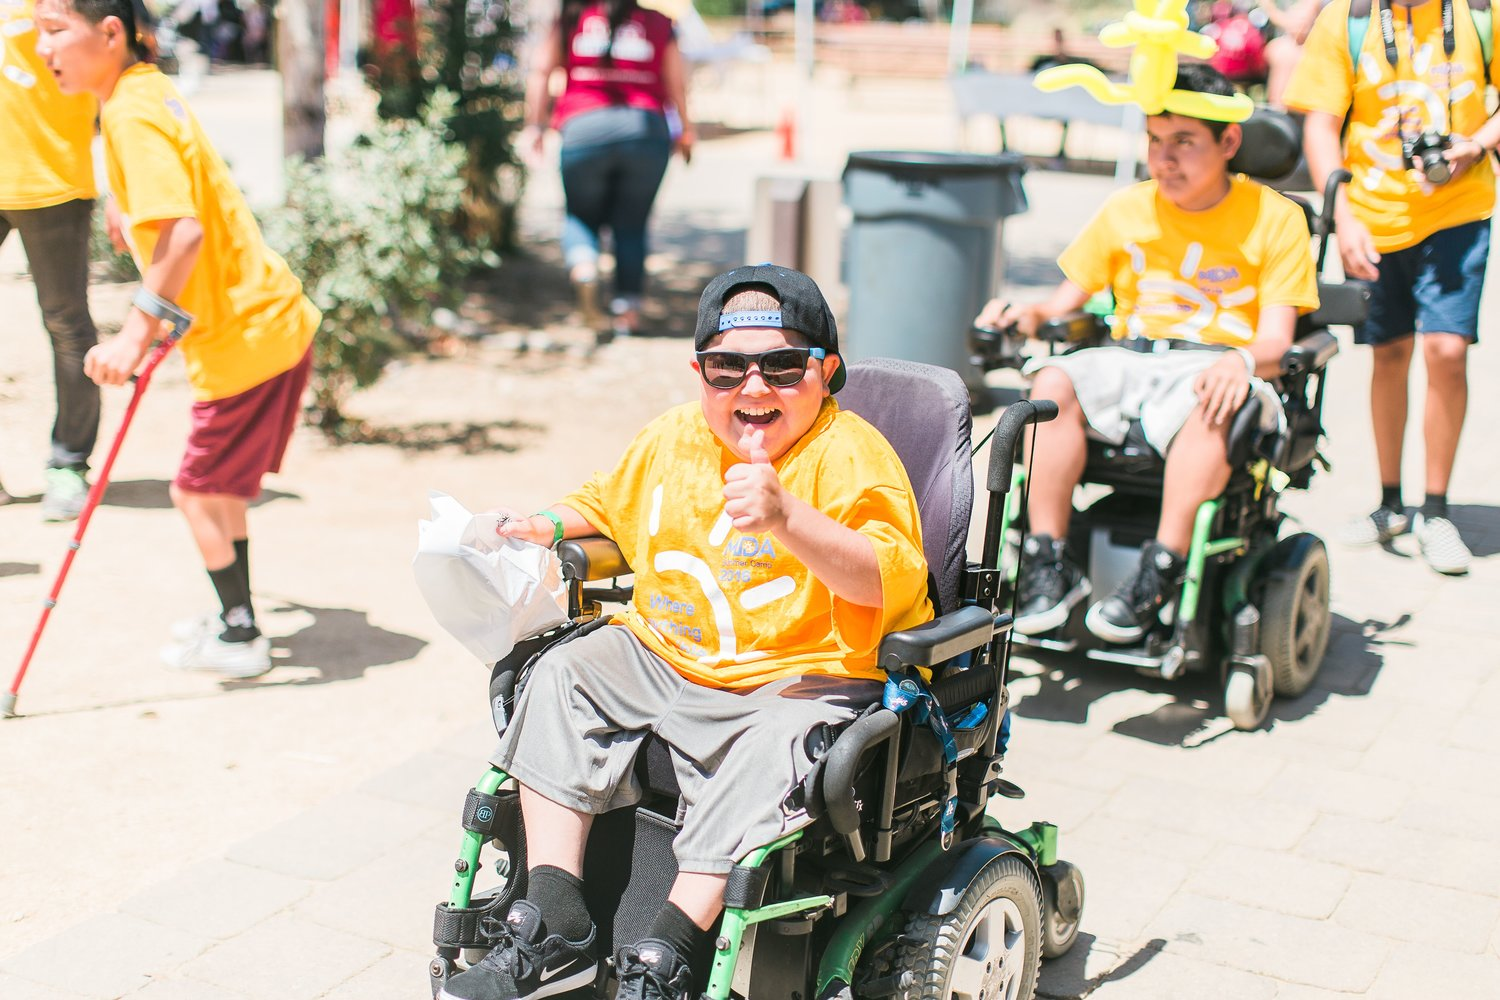 the Muscular Dystrophy Association Arizona is there to help those stricken with the disease.